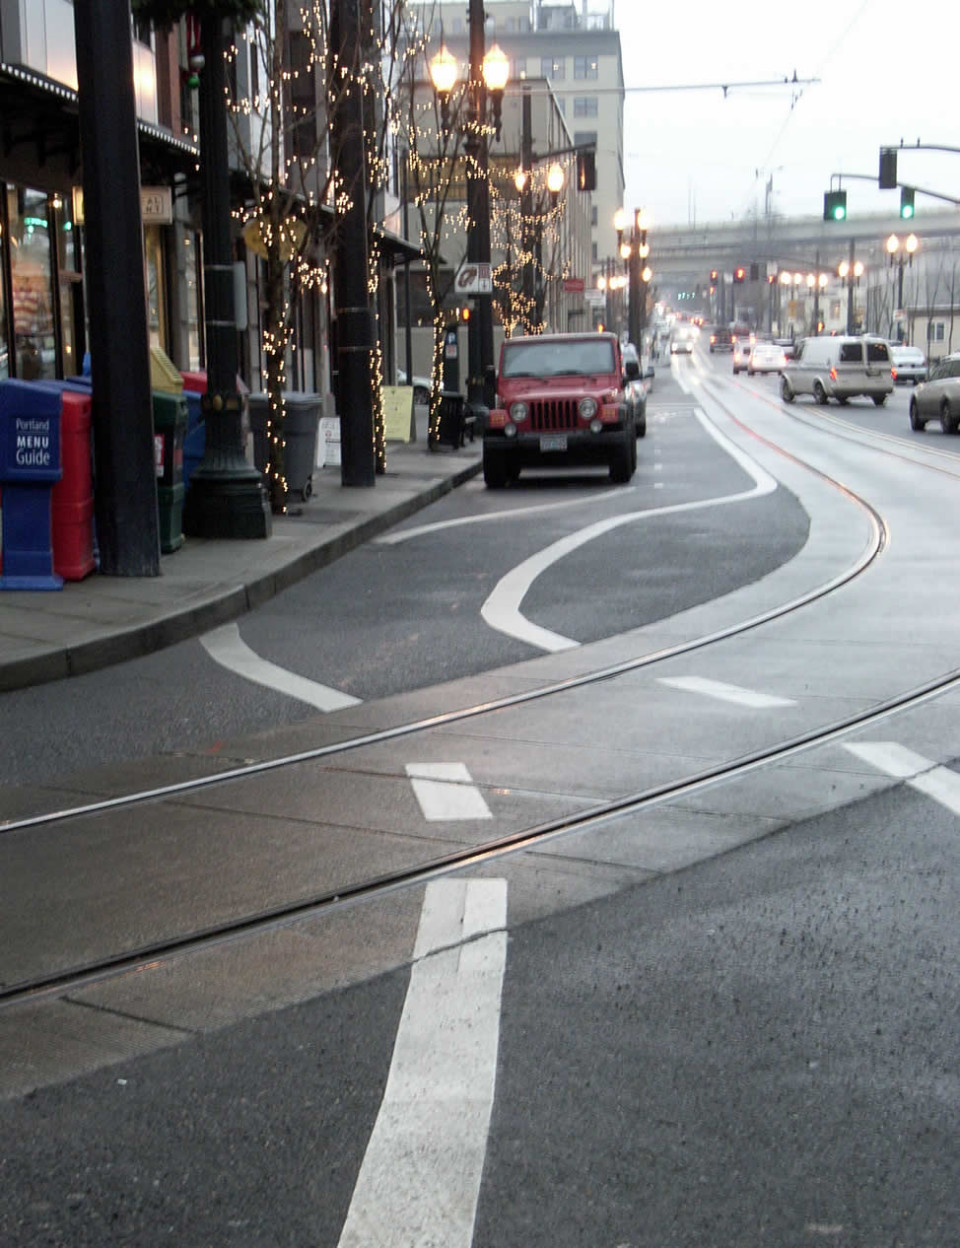 Bicycle lane shift over tracks, Portland (credit: Flickr user Payt_n)